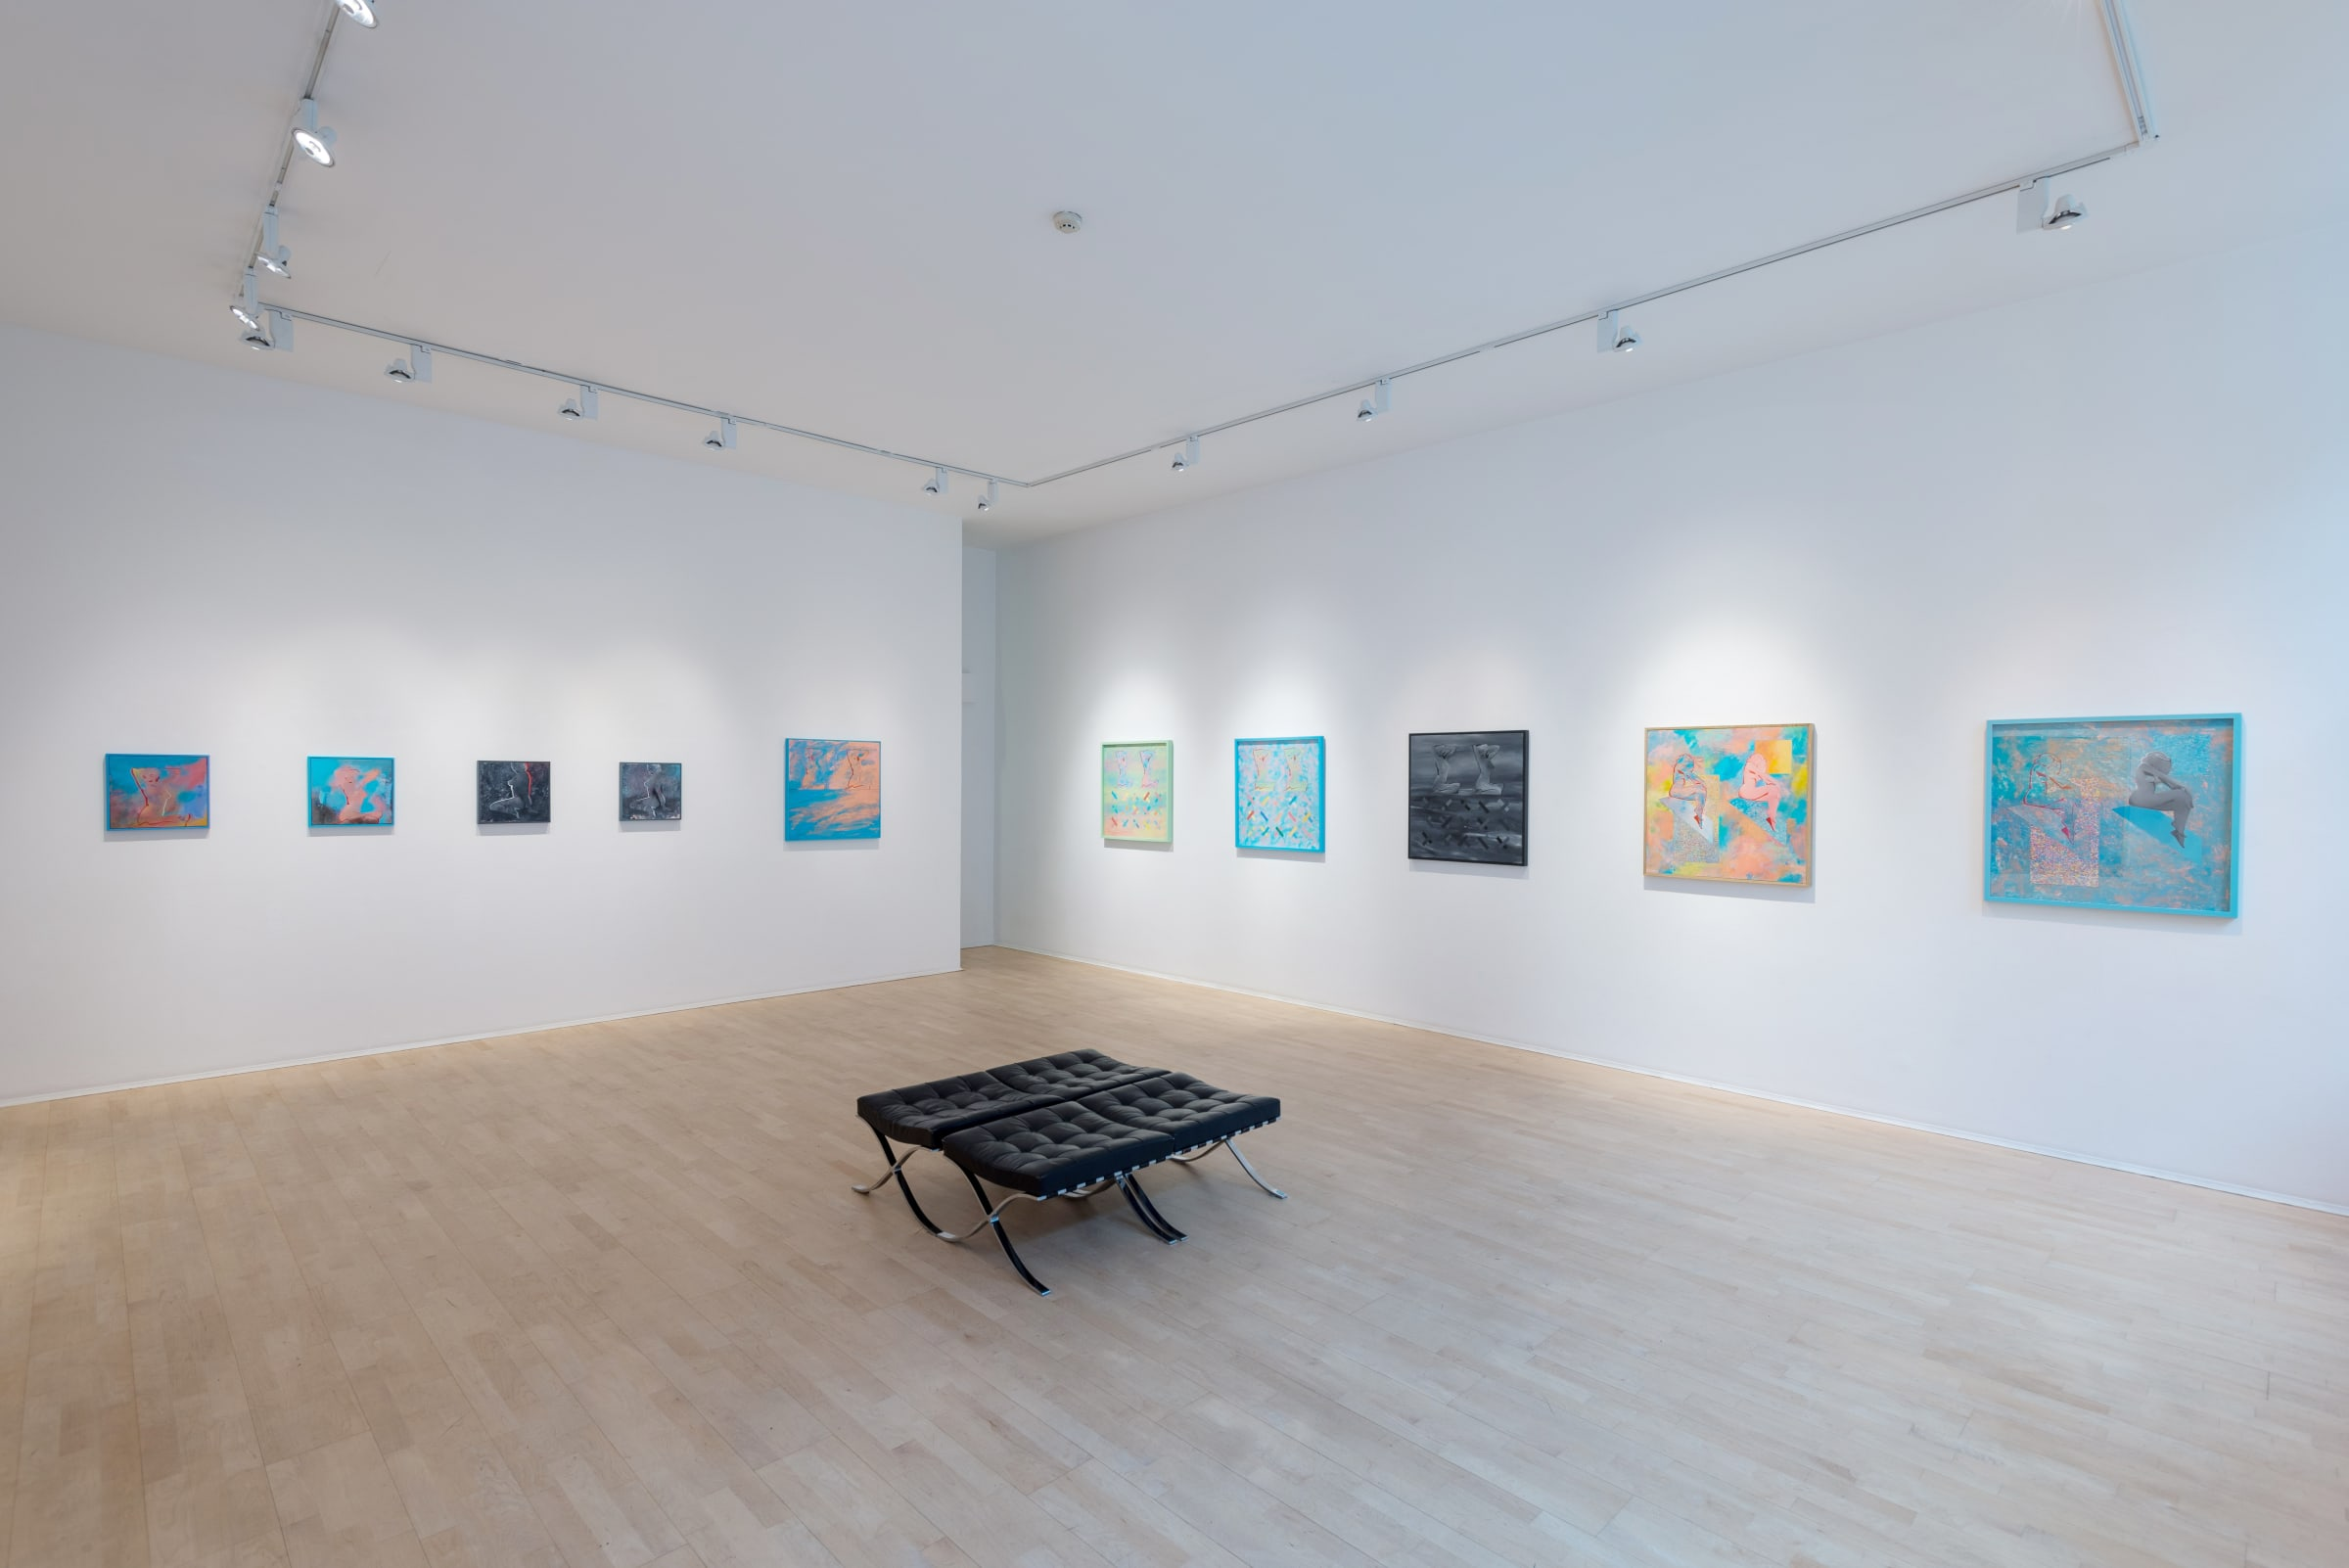 """<span class=""""link fancybox-details-link""""><a href=""""/exhibitions/318/works/image_standalone1619/"""">View Detail Page</a></span><p><strong>ANTONY DONALDSON</strong>   OF MEMORY OF OBLIVION   09 SEP - 09 OCT 2015   Installation view</p>"""